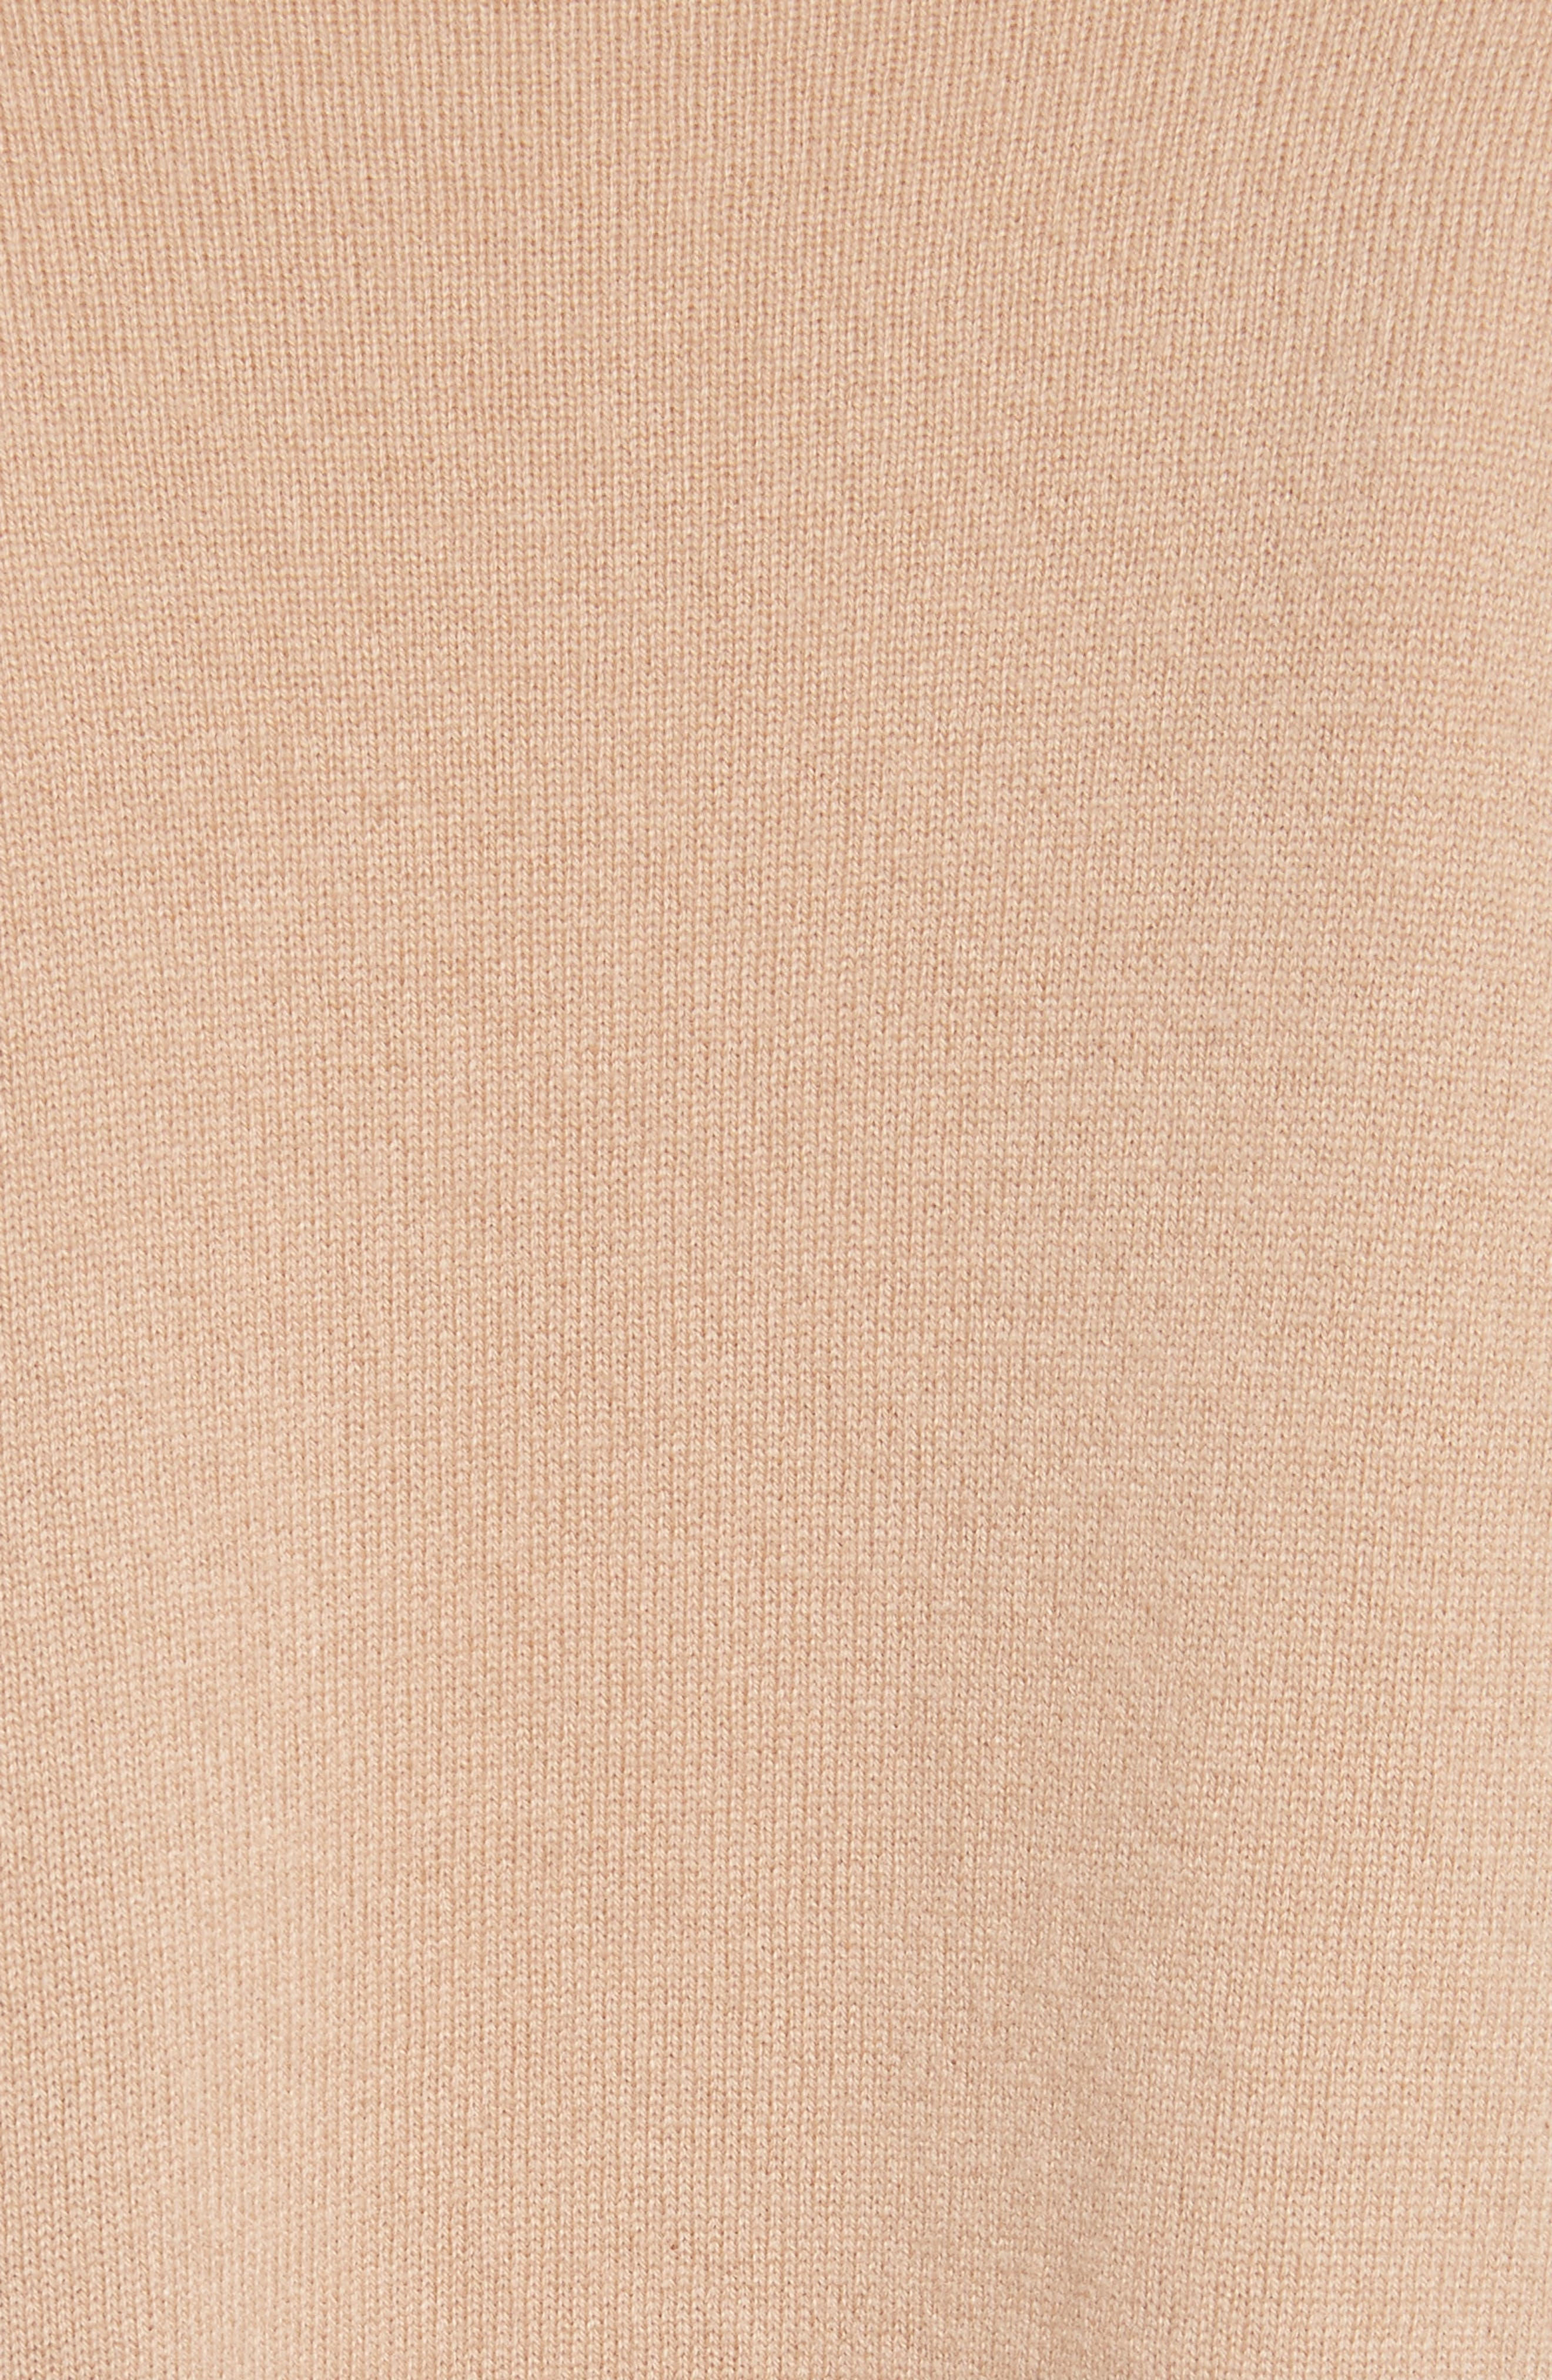 Canter Cashmere Turtleneck,                             Alternate thumbnail 5, color,                             Camel/ Ivory/ Black